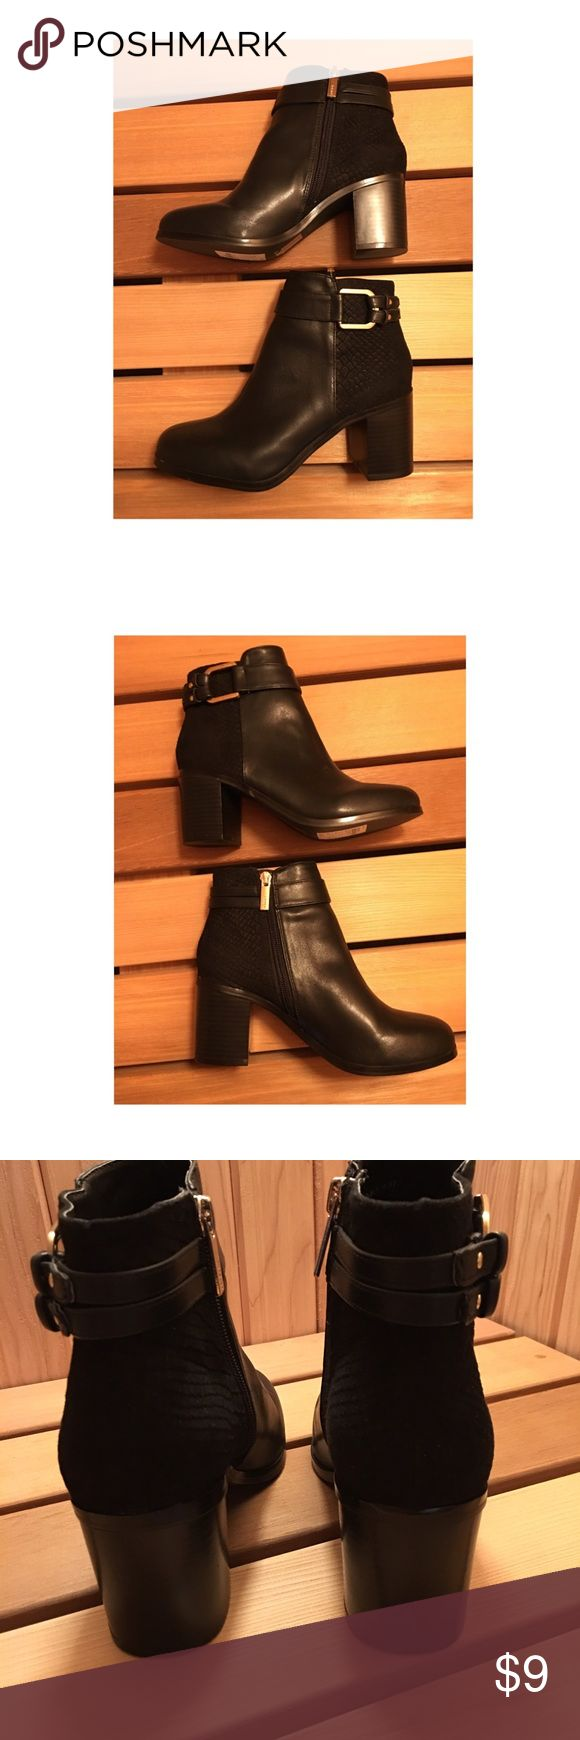 "Ladies Black Ankle Boots, Block Heel, Size 6.5 Ladies Black Ankle Boots, Gold Buckle & inside Zipper, Block Heel, Size 6.5, 2.5"" heel Top Shop Shoes Ankle Boots & Booties"